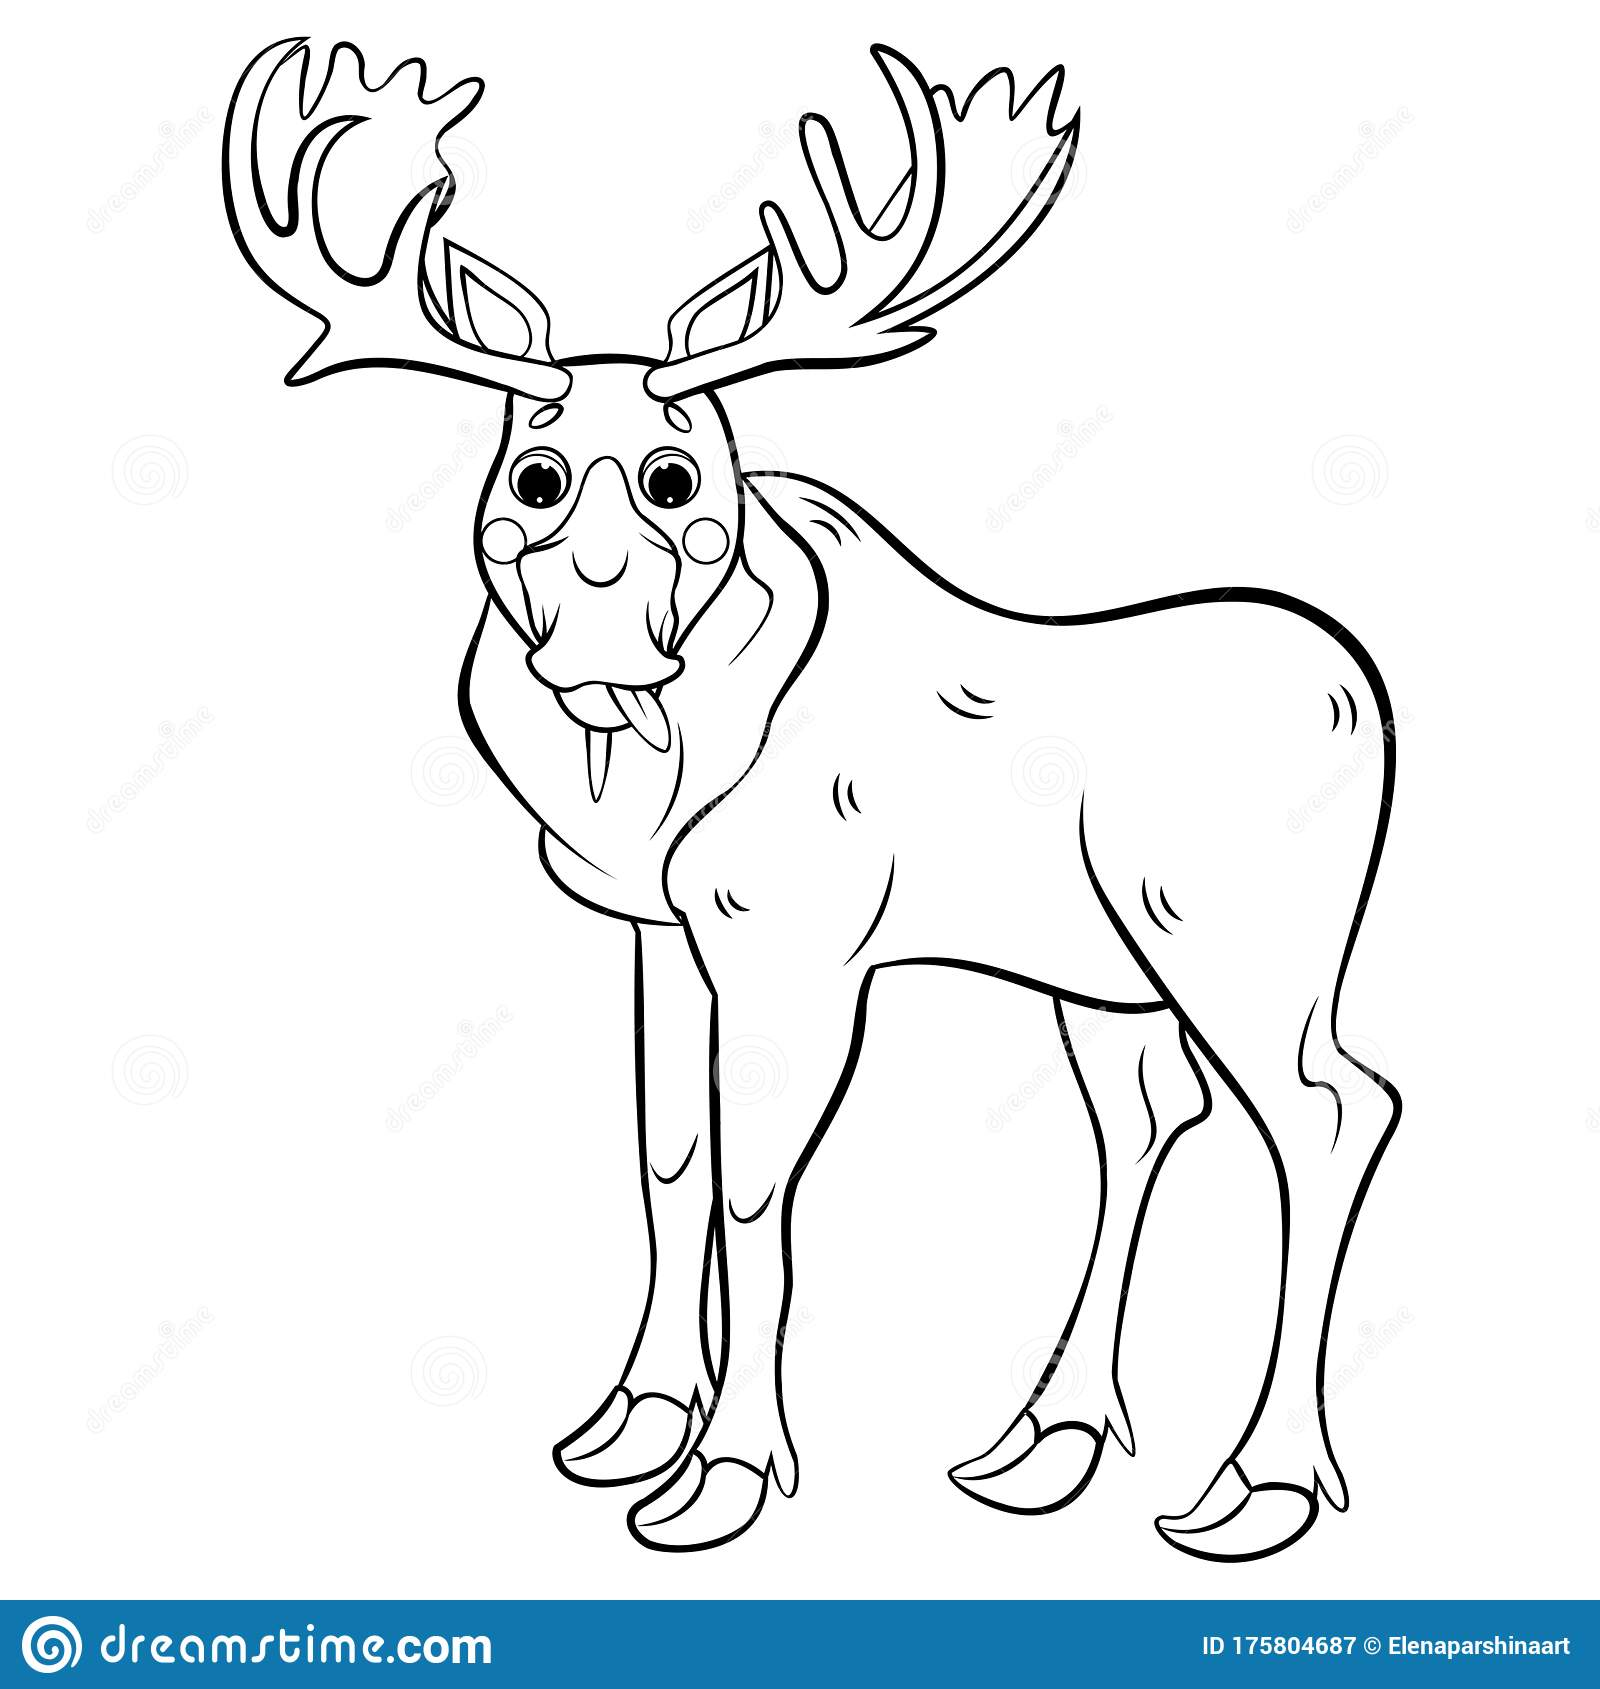 Elk Hunting Coloring Pages. dog fishing coloring page animal ... | 1689x1600